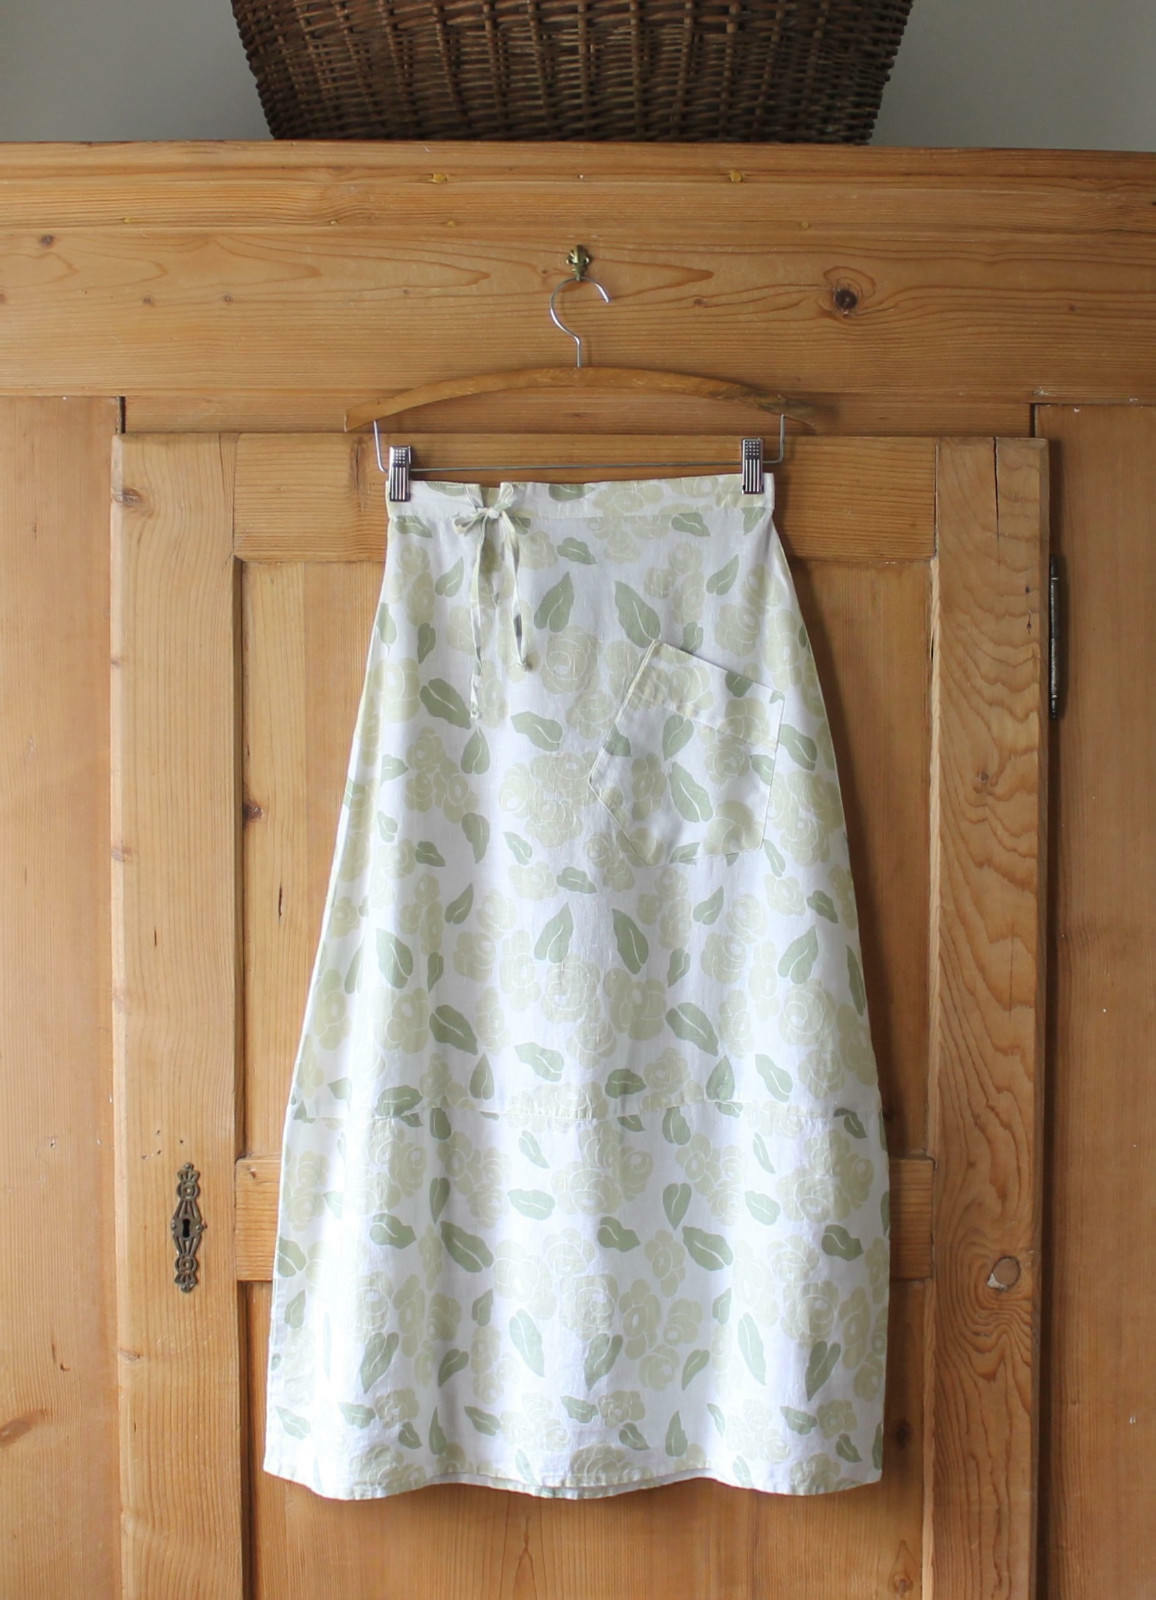 Flax A Thousand Mile Journey Begins With One Step Skirt100% Linen Sz Petite